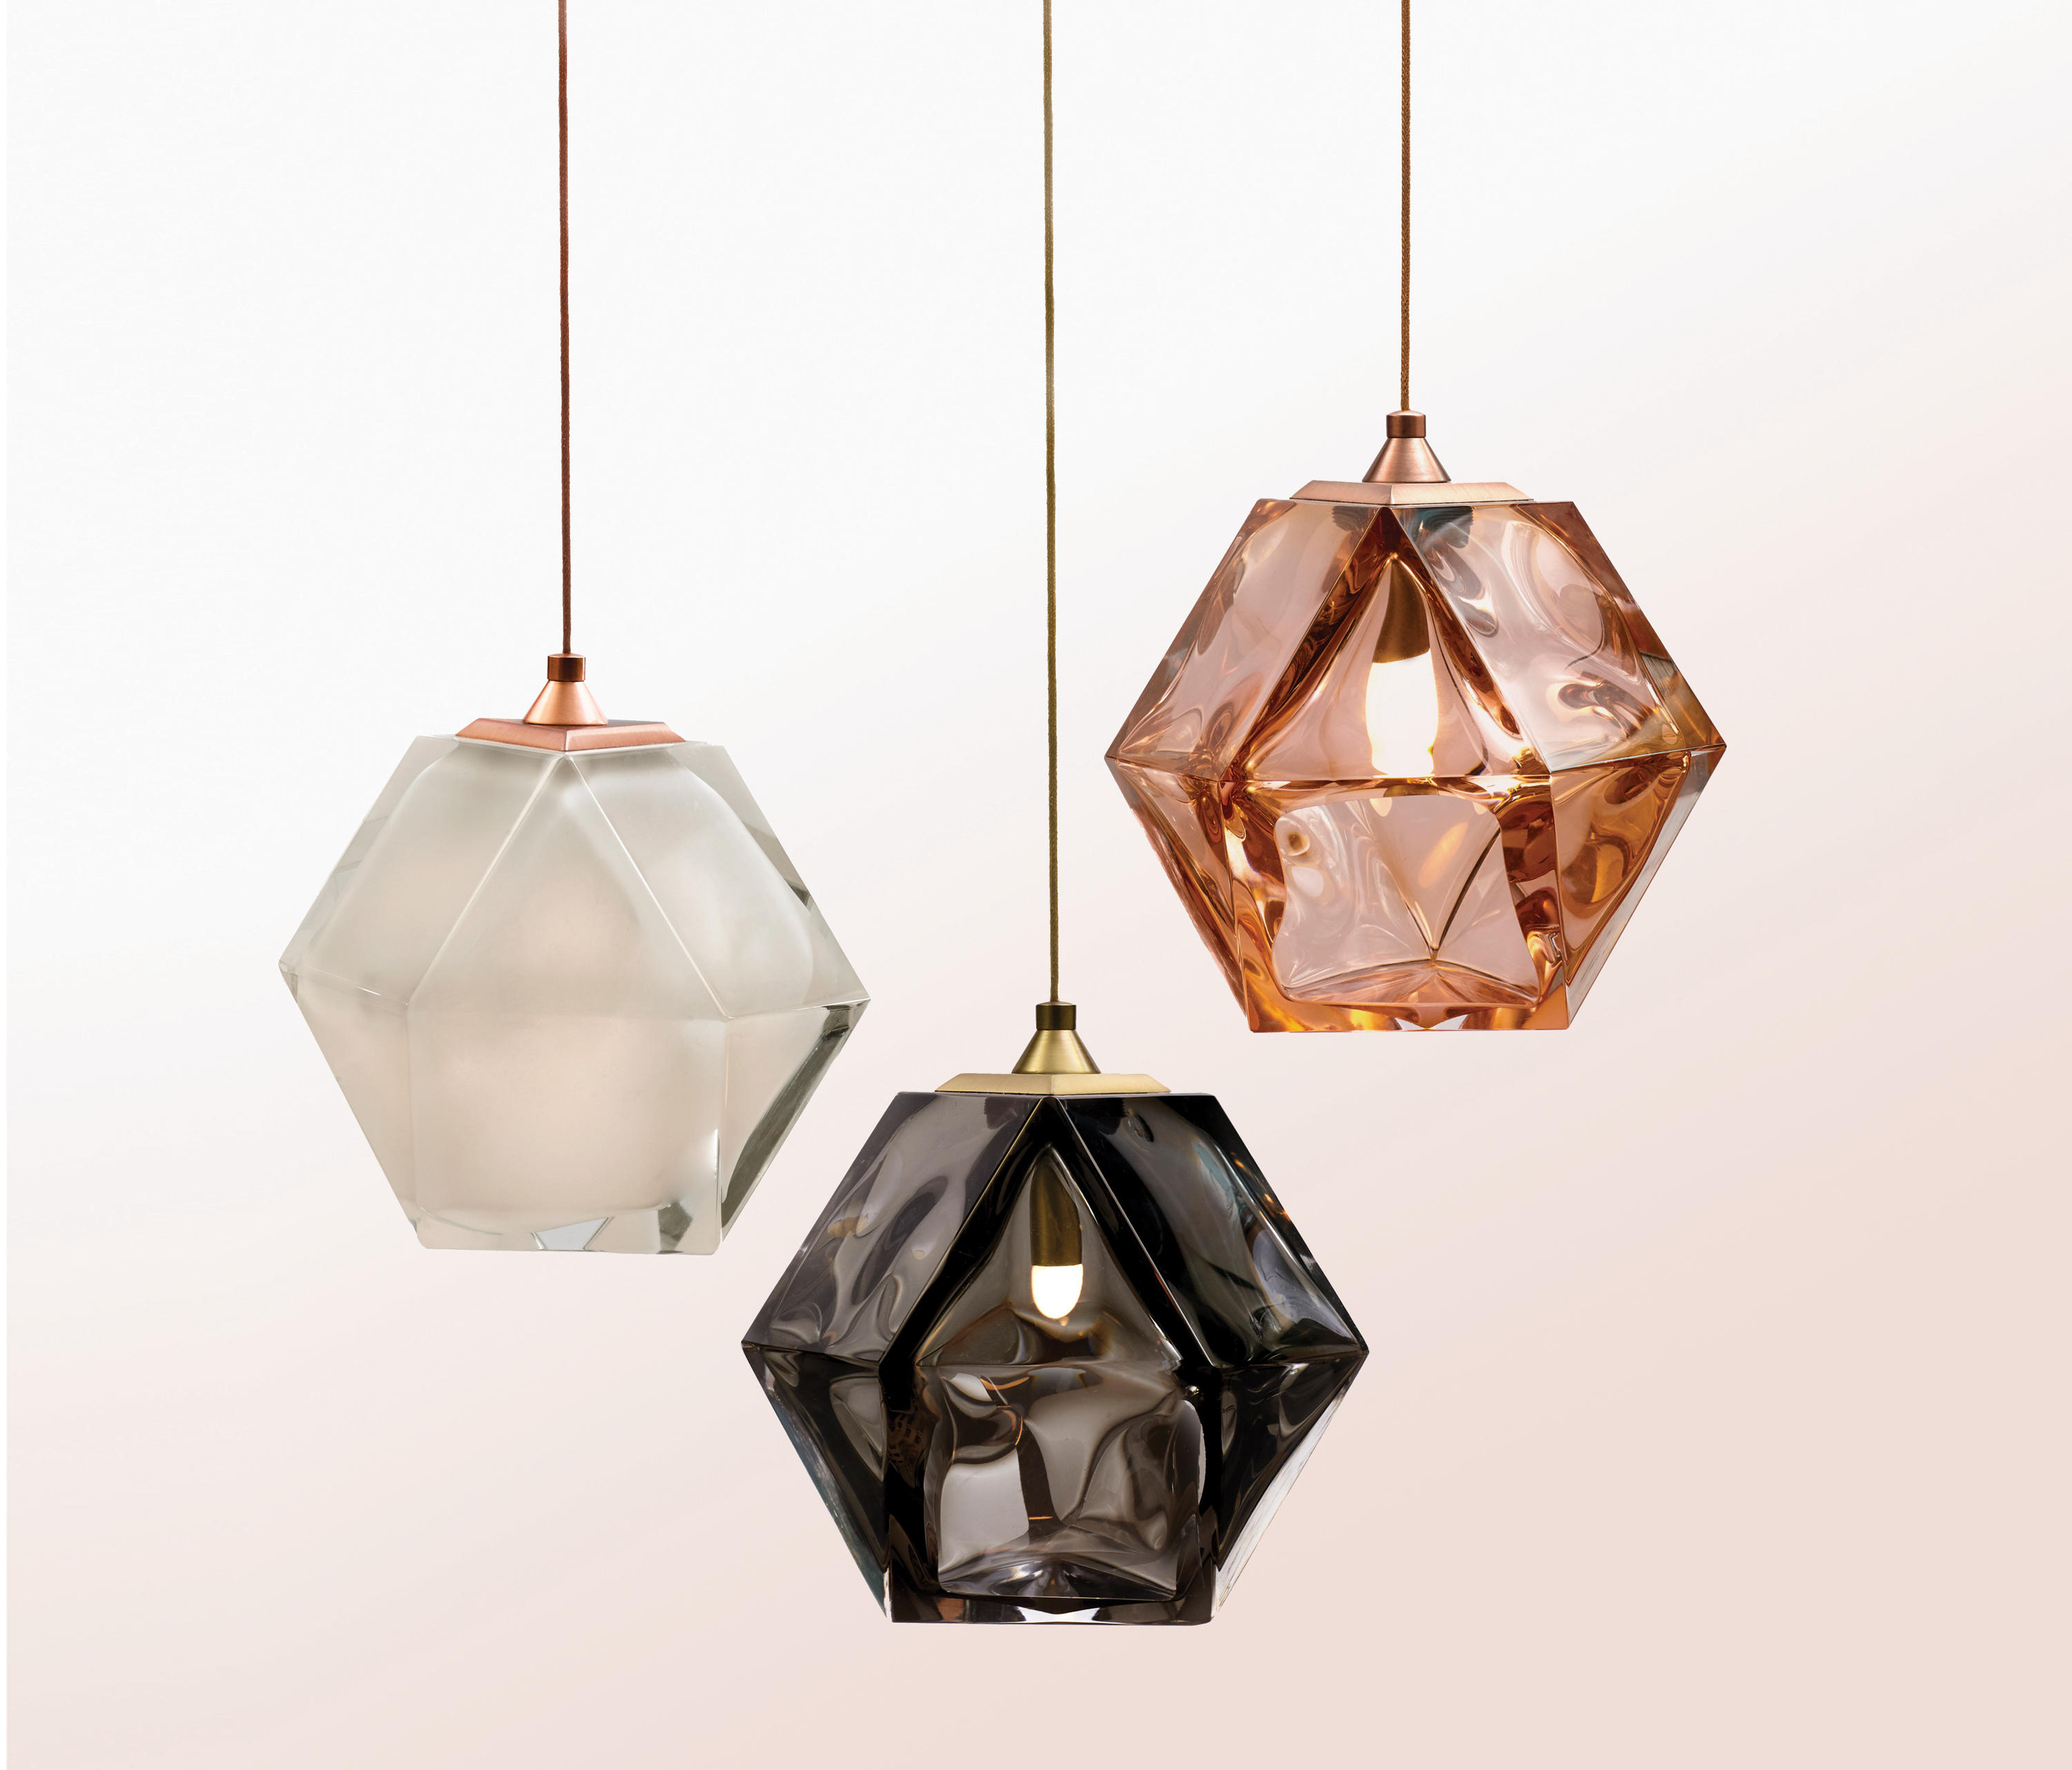 double en welles general scott from product in pendant glass blown pendants showroom h lighting by gabriel